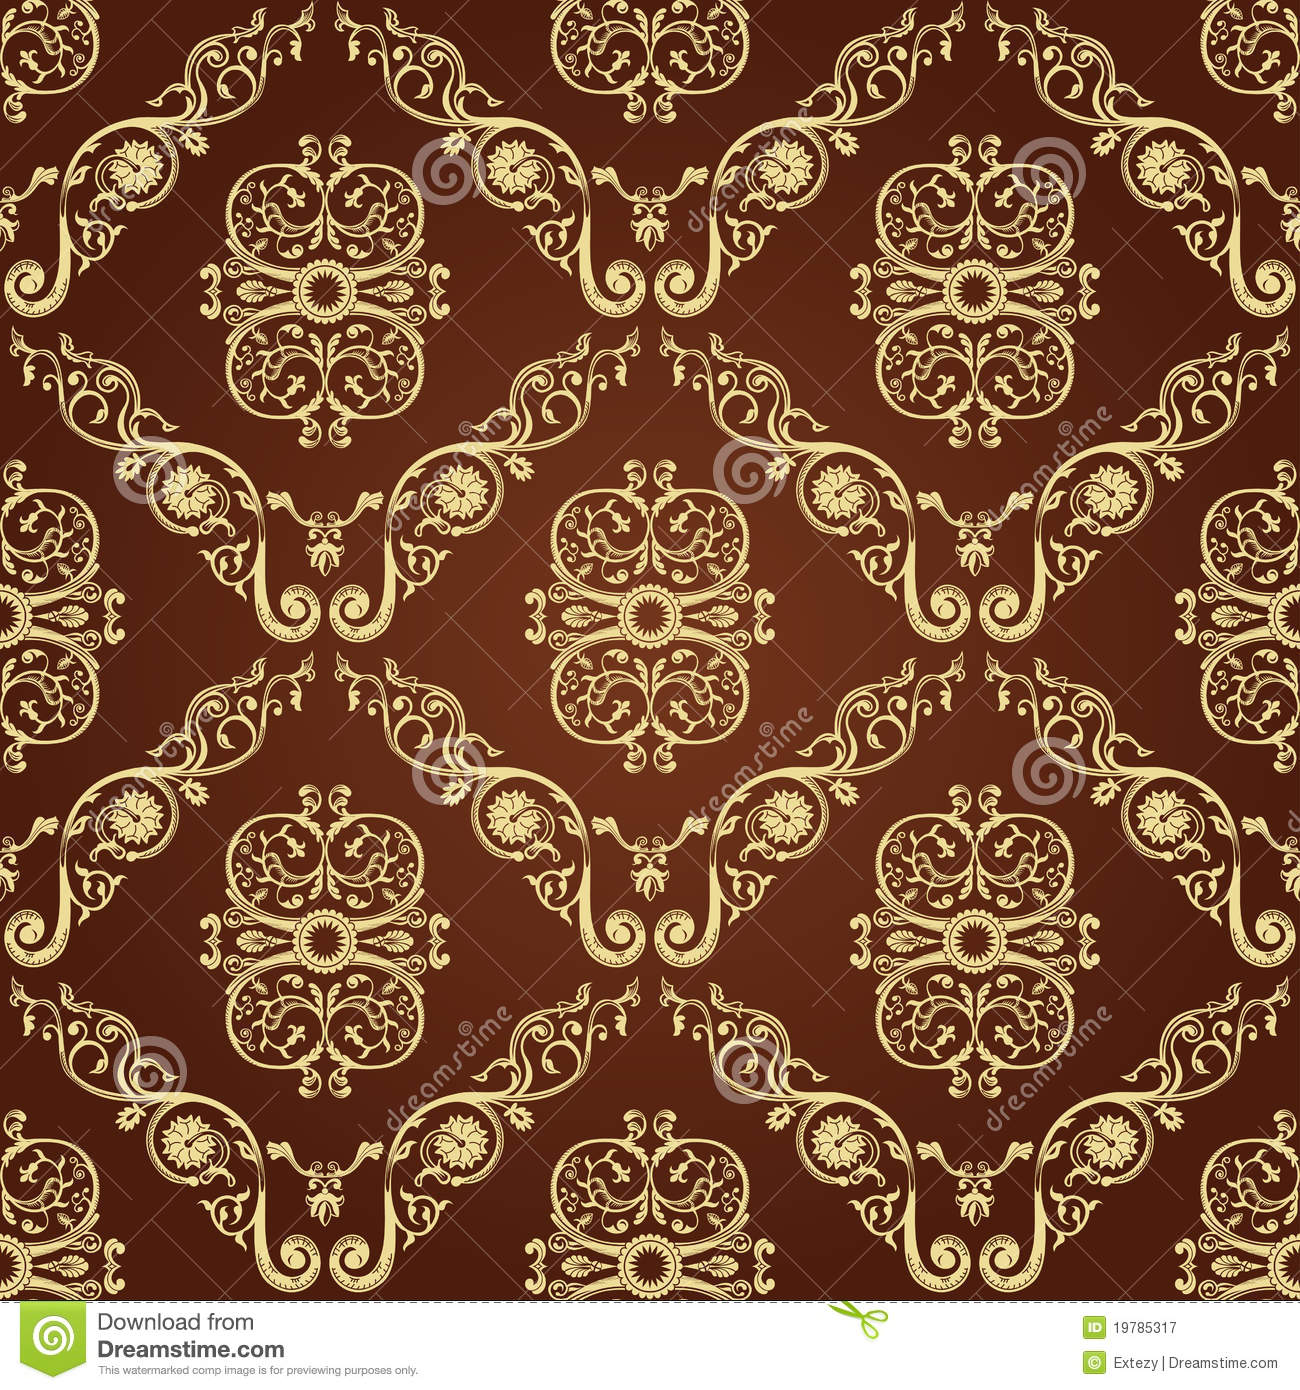 Seamless vintage decor wallpaper background royalty free stock photography image 19785317 - Decoratie wallpaper eetkamer ...